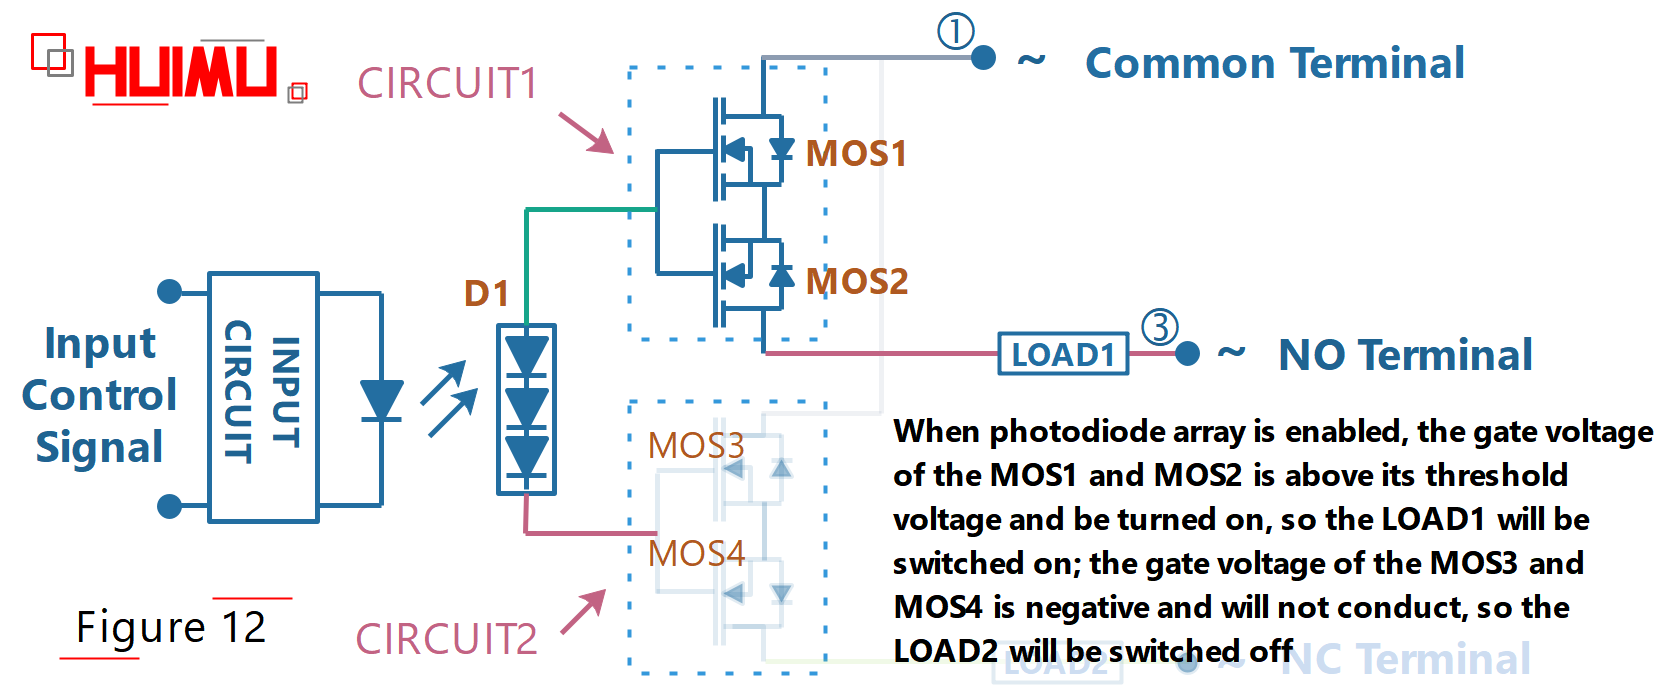 photodiode-array SPDT solid state relay circuit diagram, when the switch is turned on at AC power supply; how does a single pole double throw switch work, how to wire a single pole double throw switch, single pole double throw contactor, single pole double throw relay diagram, spdt solid state relay. More detail via www.@huimultd.com